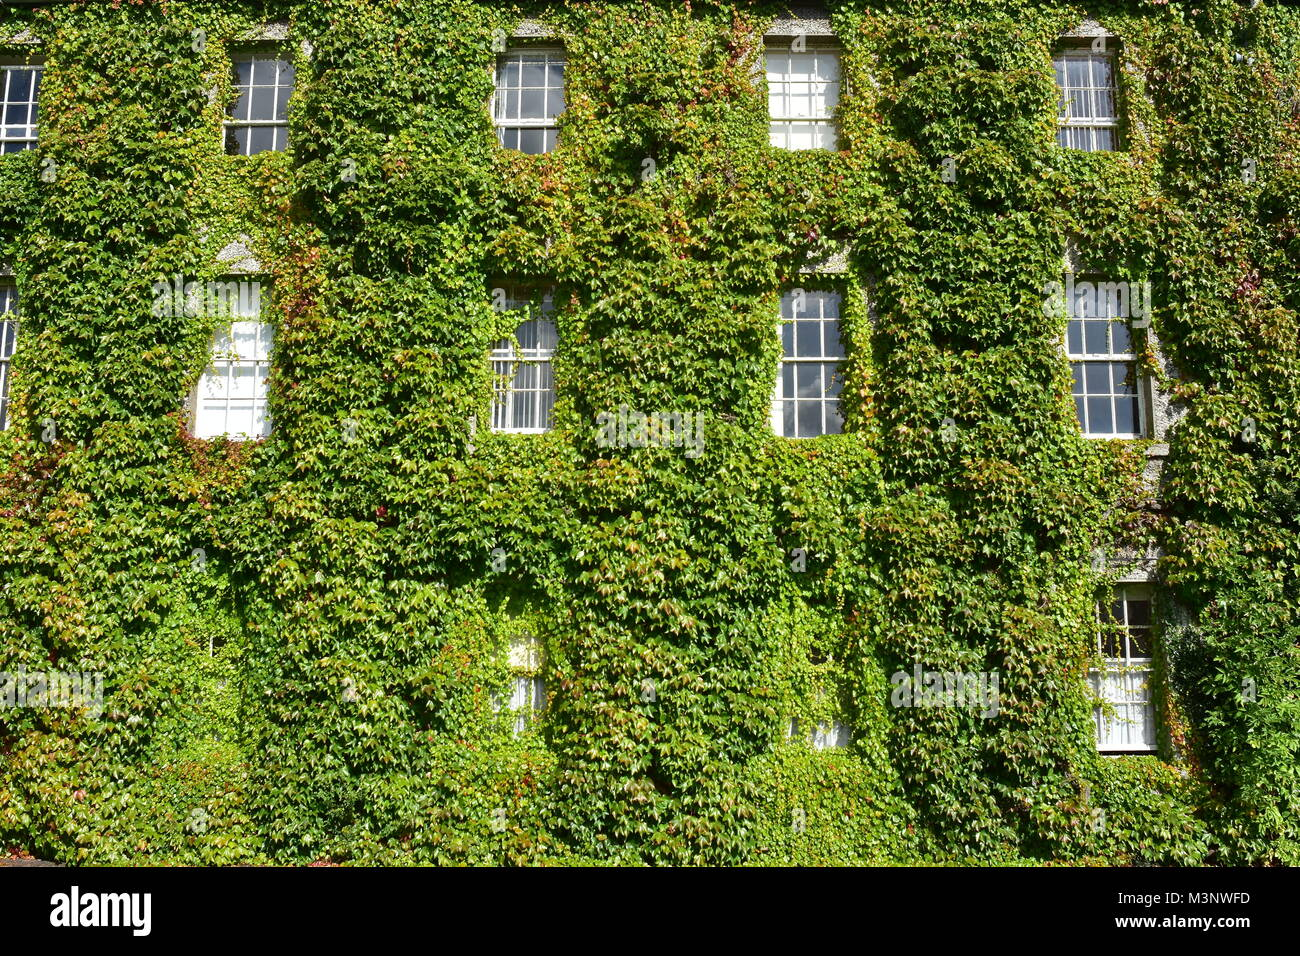 Exterior wall of historical multi-story building covered with dense green vines. - Stock Image